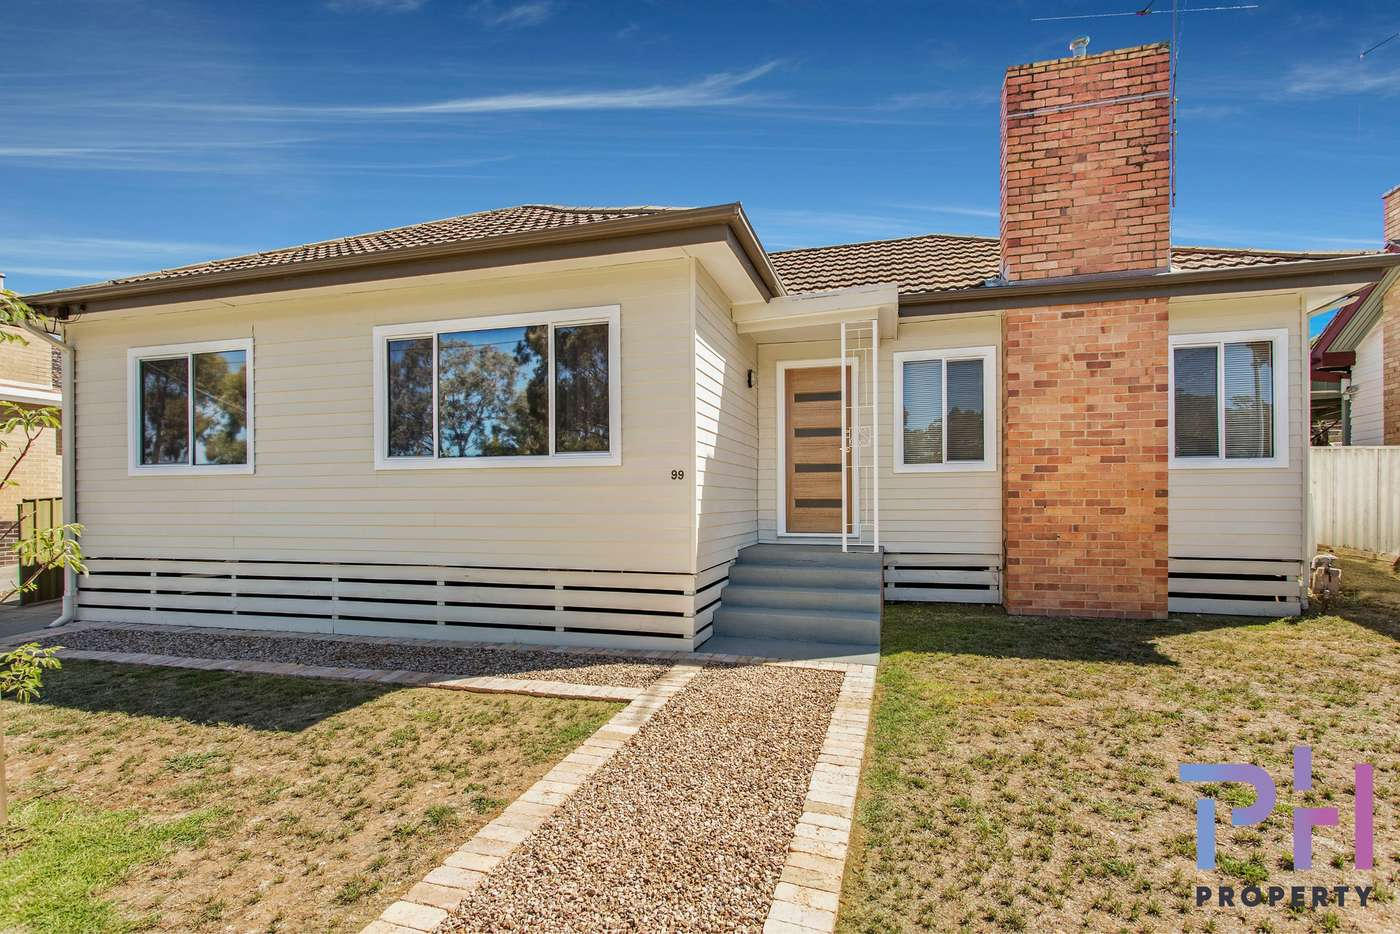 Main view of Homely house listing, 99 Condon Street, Kennington VIC 3550